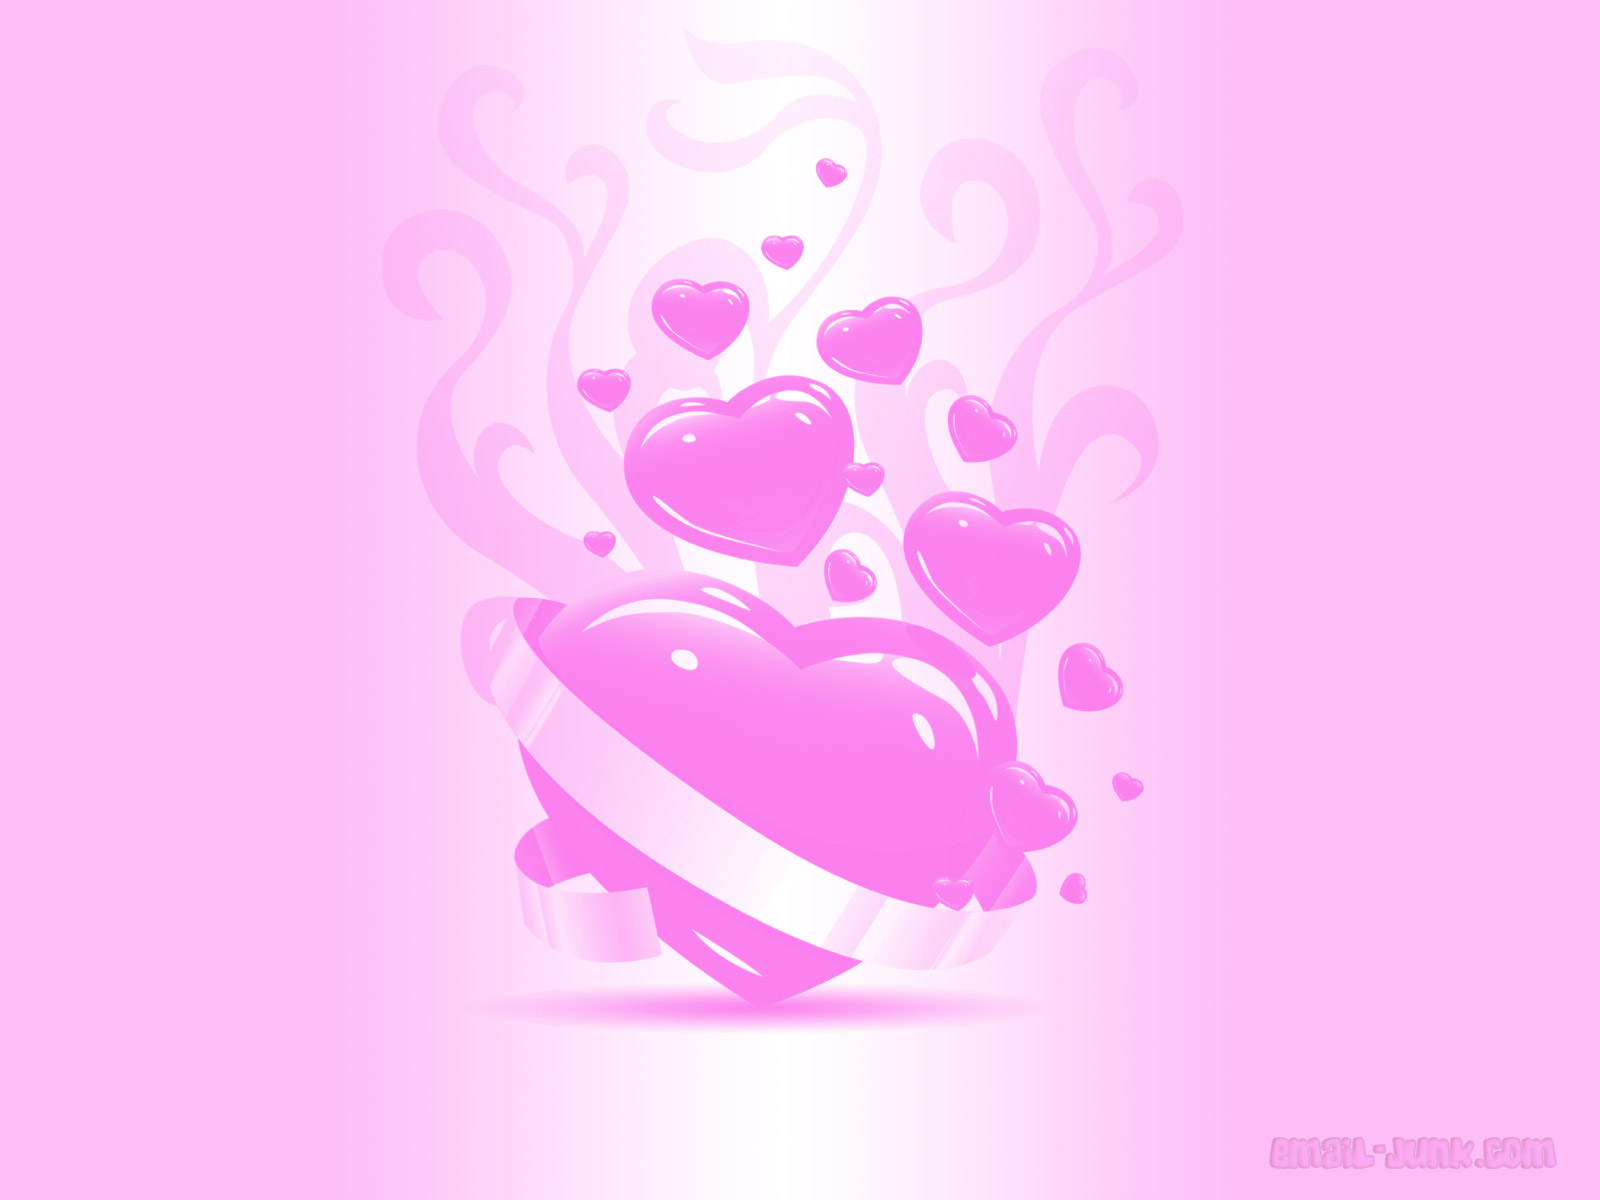 Valentines Heart wallpapers HD Wallpapers 1600x1200